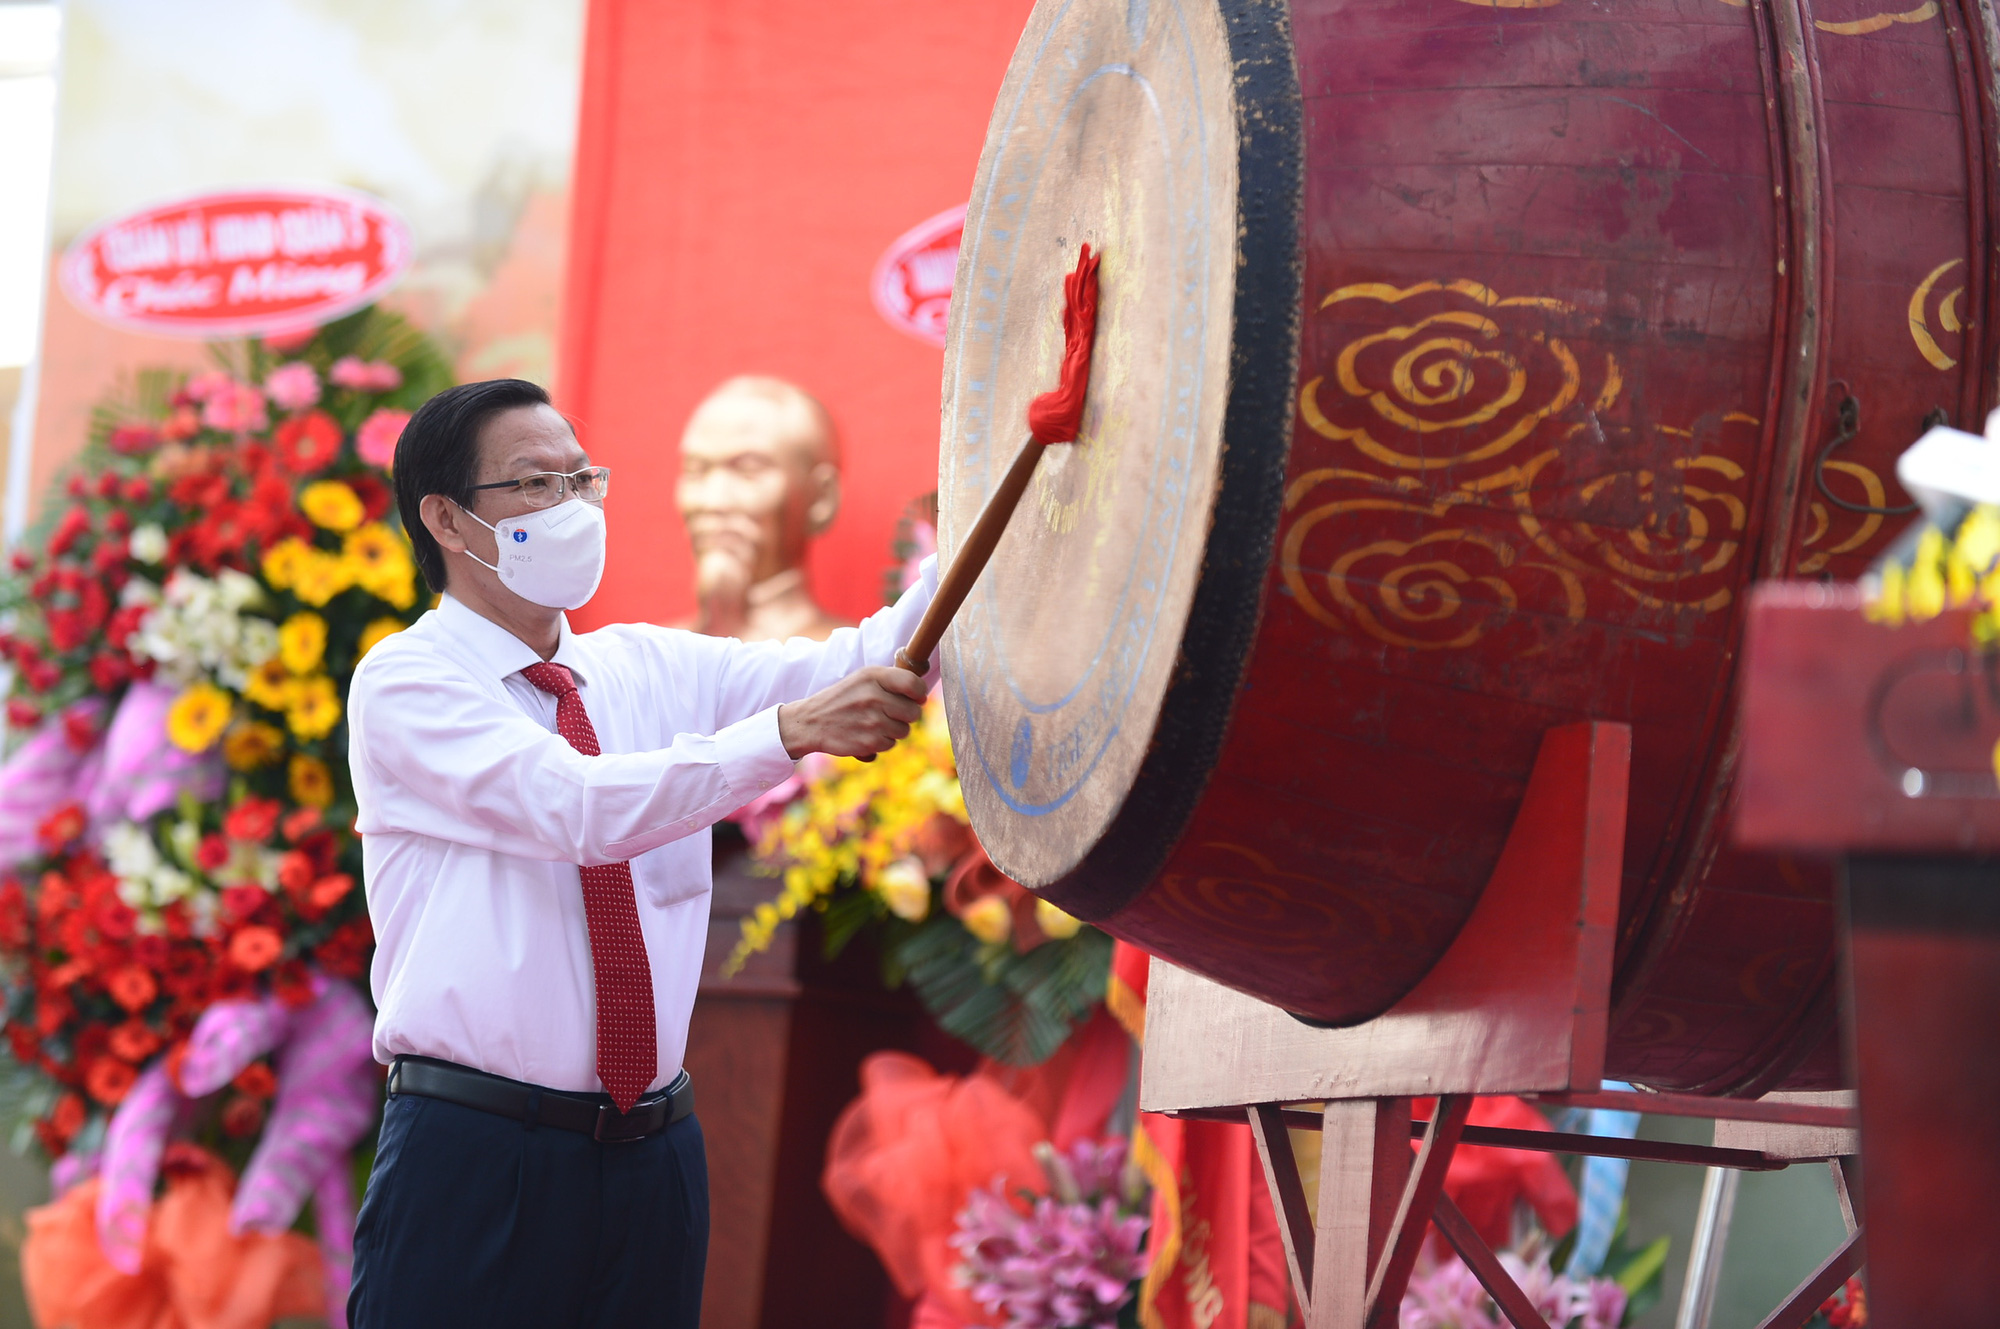 2021-22 school year opens amidst COVID-19 pandemic in Vietnam